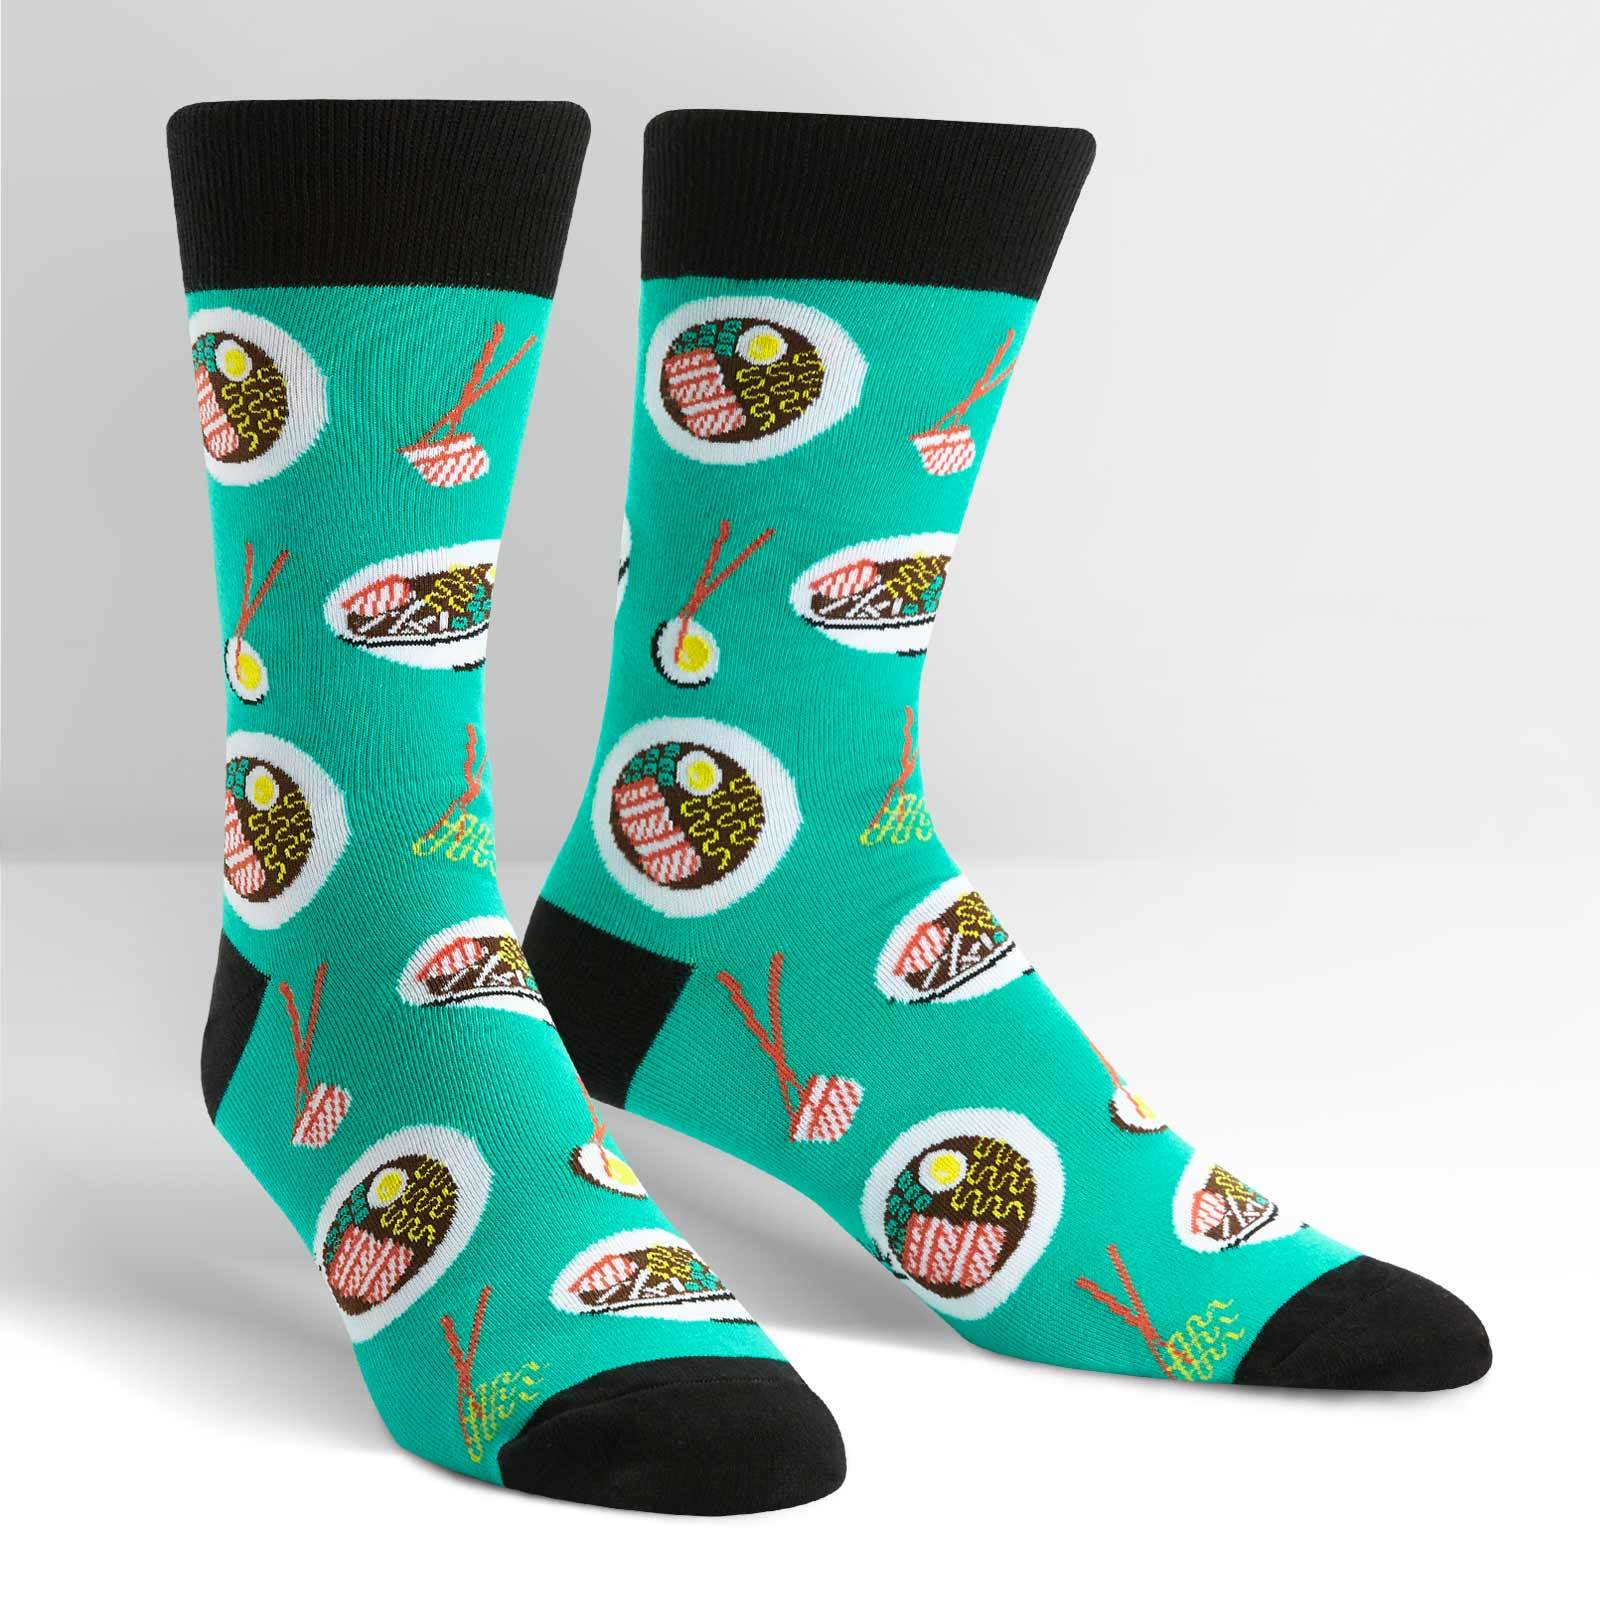 Men's - Ra-Man! Crew Socks image